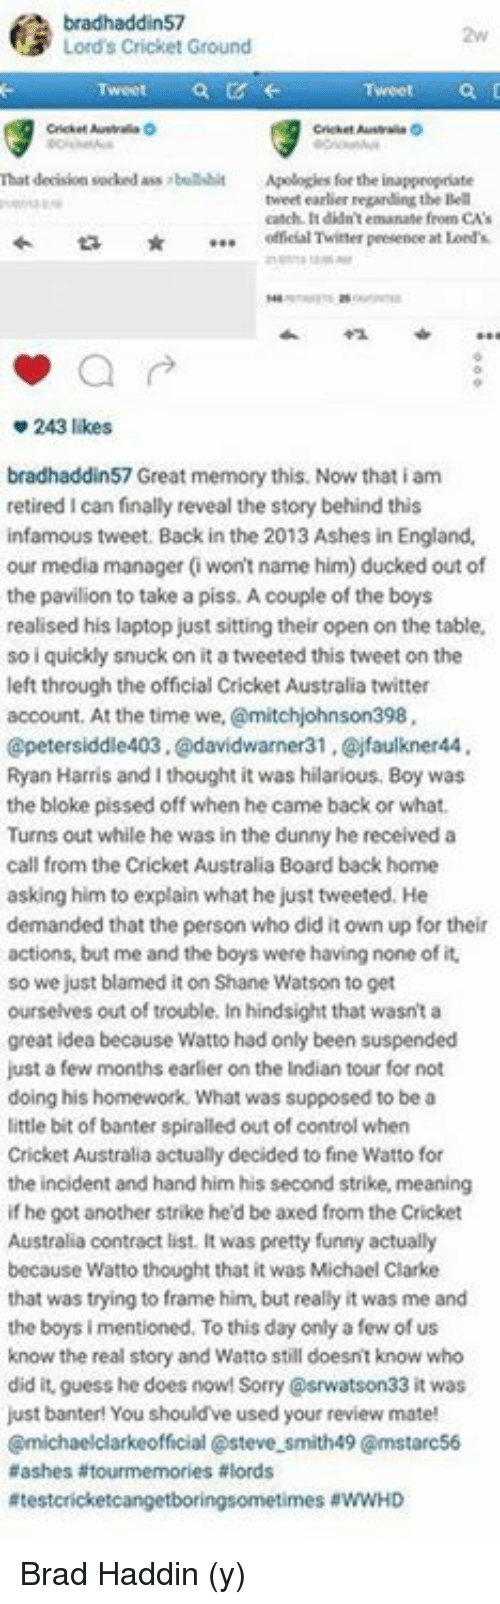 Ass, England, and Funny: bradhaddin57  N3 Lord's Cricket Ground  That decision sucked ass bullshit  Apologies for the inappropriate  tweet earlier regarding the Bell  catch. didn't emanate feoen CA's  offeial Twitter presence  at Lord  243 likes  bradhaddin57 Great memory this. Now that iam  retired I can finally reveal the story behind this  infamous tweet. Back in the 2013 Ashes in England.  our media manager (won't name him) ducked out of  the pavilion to take a piss. Acouple of the boys  realised his laptop just sitting their open on the table,  so i quickly snuck on it atweeted this tweet on the  left through the official cricket Australia twitter  account. At the time we,  @mitchjohnson398,  petersiddle403.@davidwarner31 ,Qojfaulkner44  Ryan Harris and I thought it was hilarious. Boy was  the bloke pissed off when he came back or what.  Turns out while he was in the dunny hereceived a  call from the Cricket Australia Board back home  asking him to explain what he just tweeted. He  demanded that the person who did it own up fortheir  actions, but me and the boys were having none of it.  so we just blamed it on Shane Watson to get  ourselves out of trouble. In hindsight that wasn't a  great idea because Watto had only been suspended  just a few months earlier on the Indian tour for not  doing his homework. What was supposed to be a  little bit of banter spiralled out of control when  Cricket Australia actually decided to fine Watto for  the incident and hand him his second strike, meaning  if he got another strike he'd be axed from the Cricket  Australia contract list. It was pretty funny actually  because Watto thought that it was Michael Clarke  that was trying to frame him, but really it was me and  the boys i mentioned. To this day only a few of us  know the real story and Watto still doesnt know who  did it, guess he does now! 33 it was  just banter! You should've used your review mate!  Cmichaelclarkeofficial asteve smith49 Cmstarc56  aashes tourmemories a